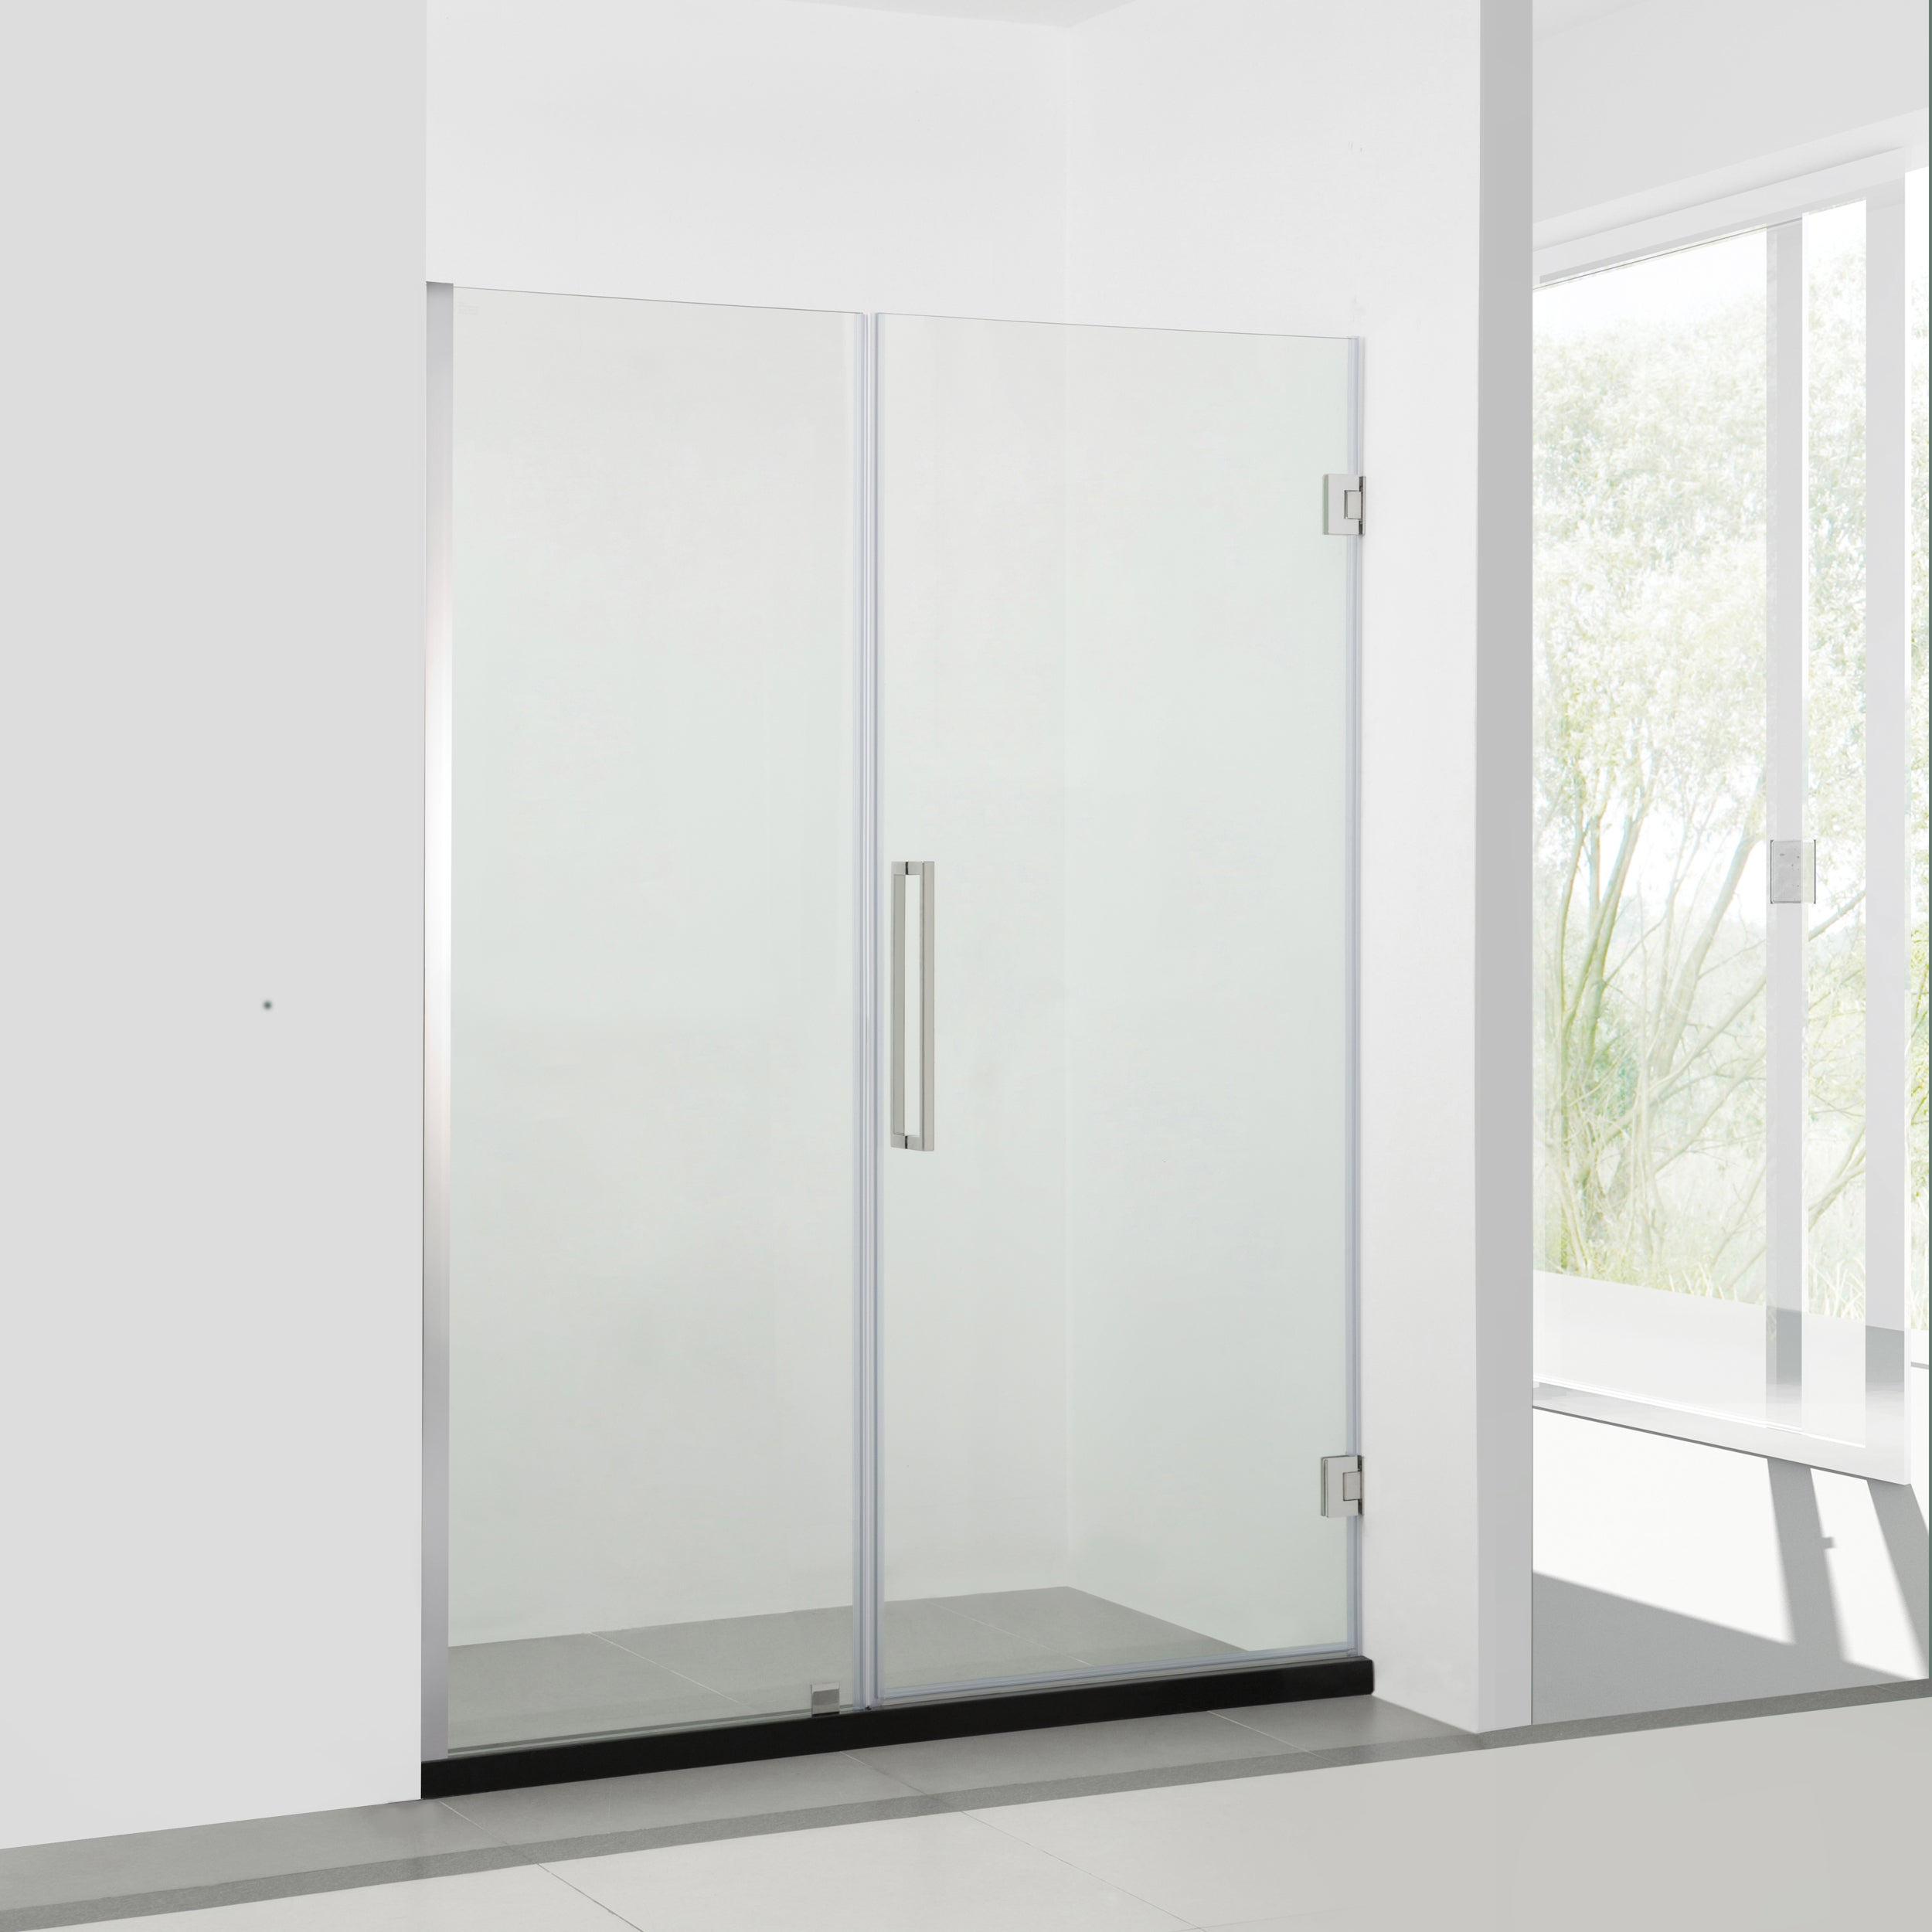 BAI 0926 Frameless Glass Shower Enclosure With Fixed Panel and Swing ...